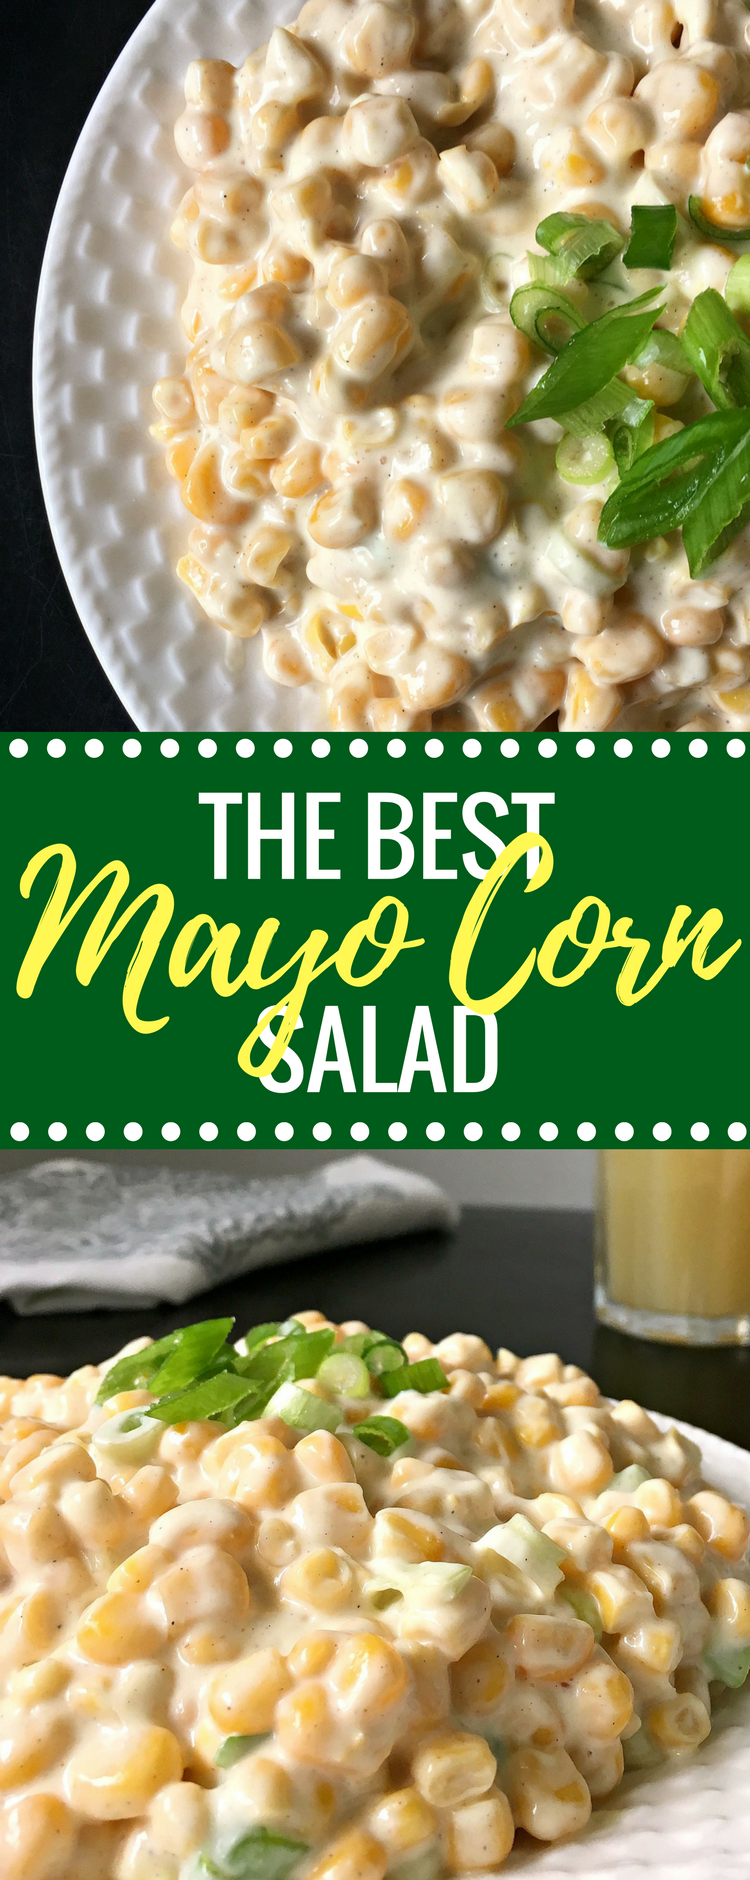 Vegan Corn Mayo Salad is the perfect egg-free and dairy-free side dish you can make in 10 minutes. Fresh, crunchy and goes well with nearly any main dish. You can serve it by itself too with a few slices of fresh bread. | The Green Loot #vegan